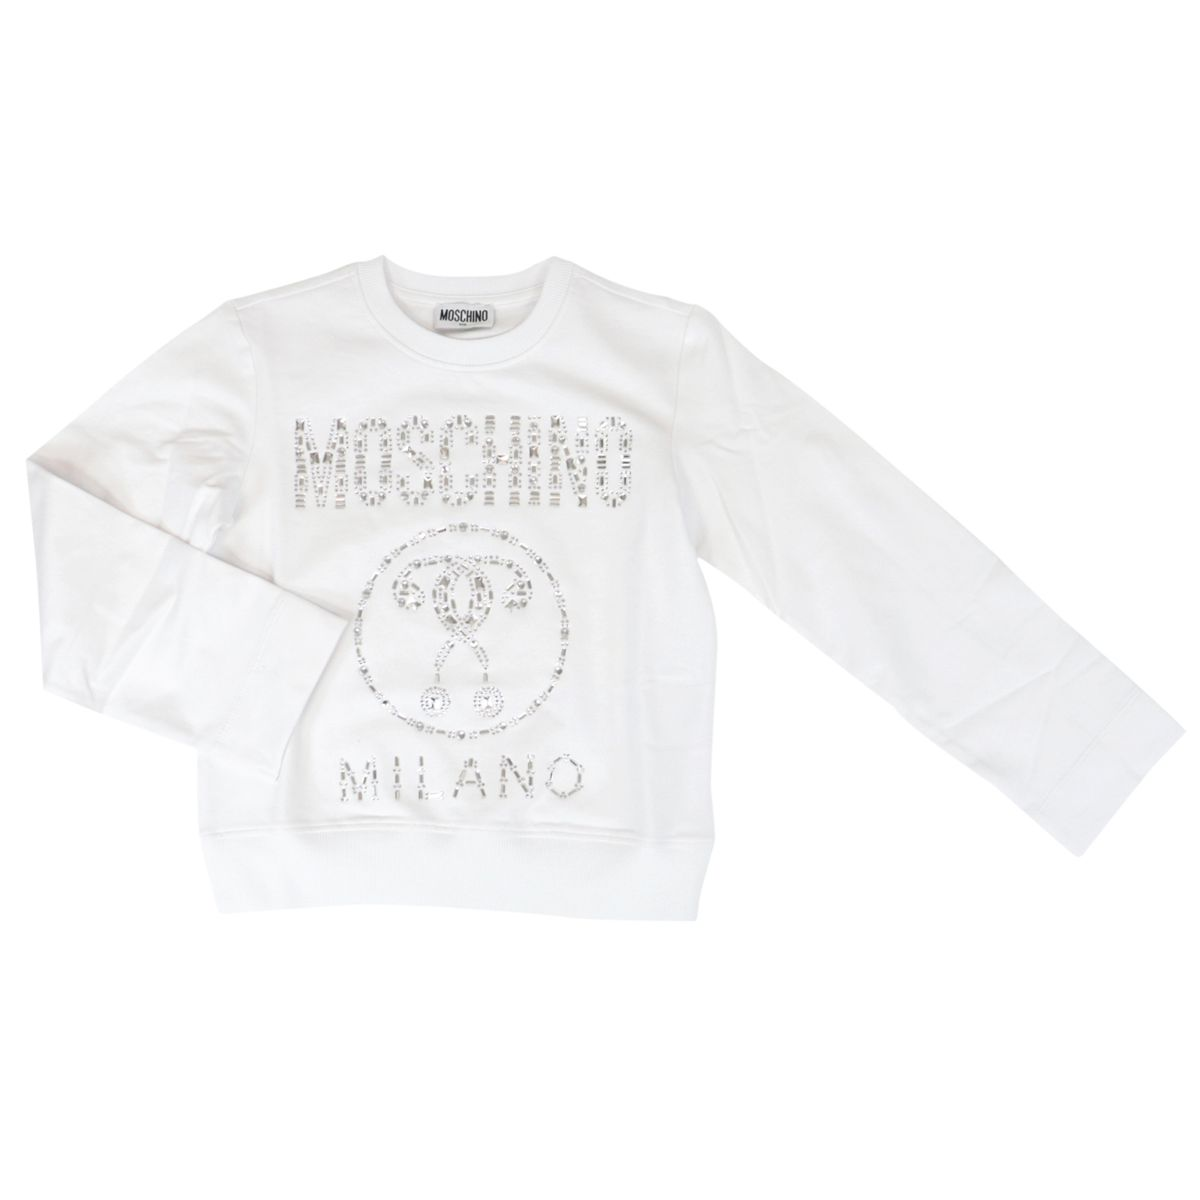 Cotton sweatshirt with logo and metal inserts Optical white Moschino